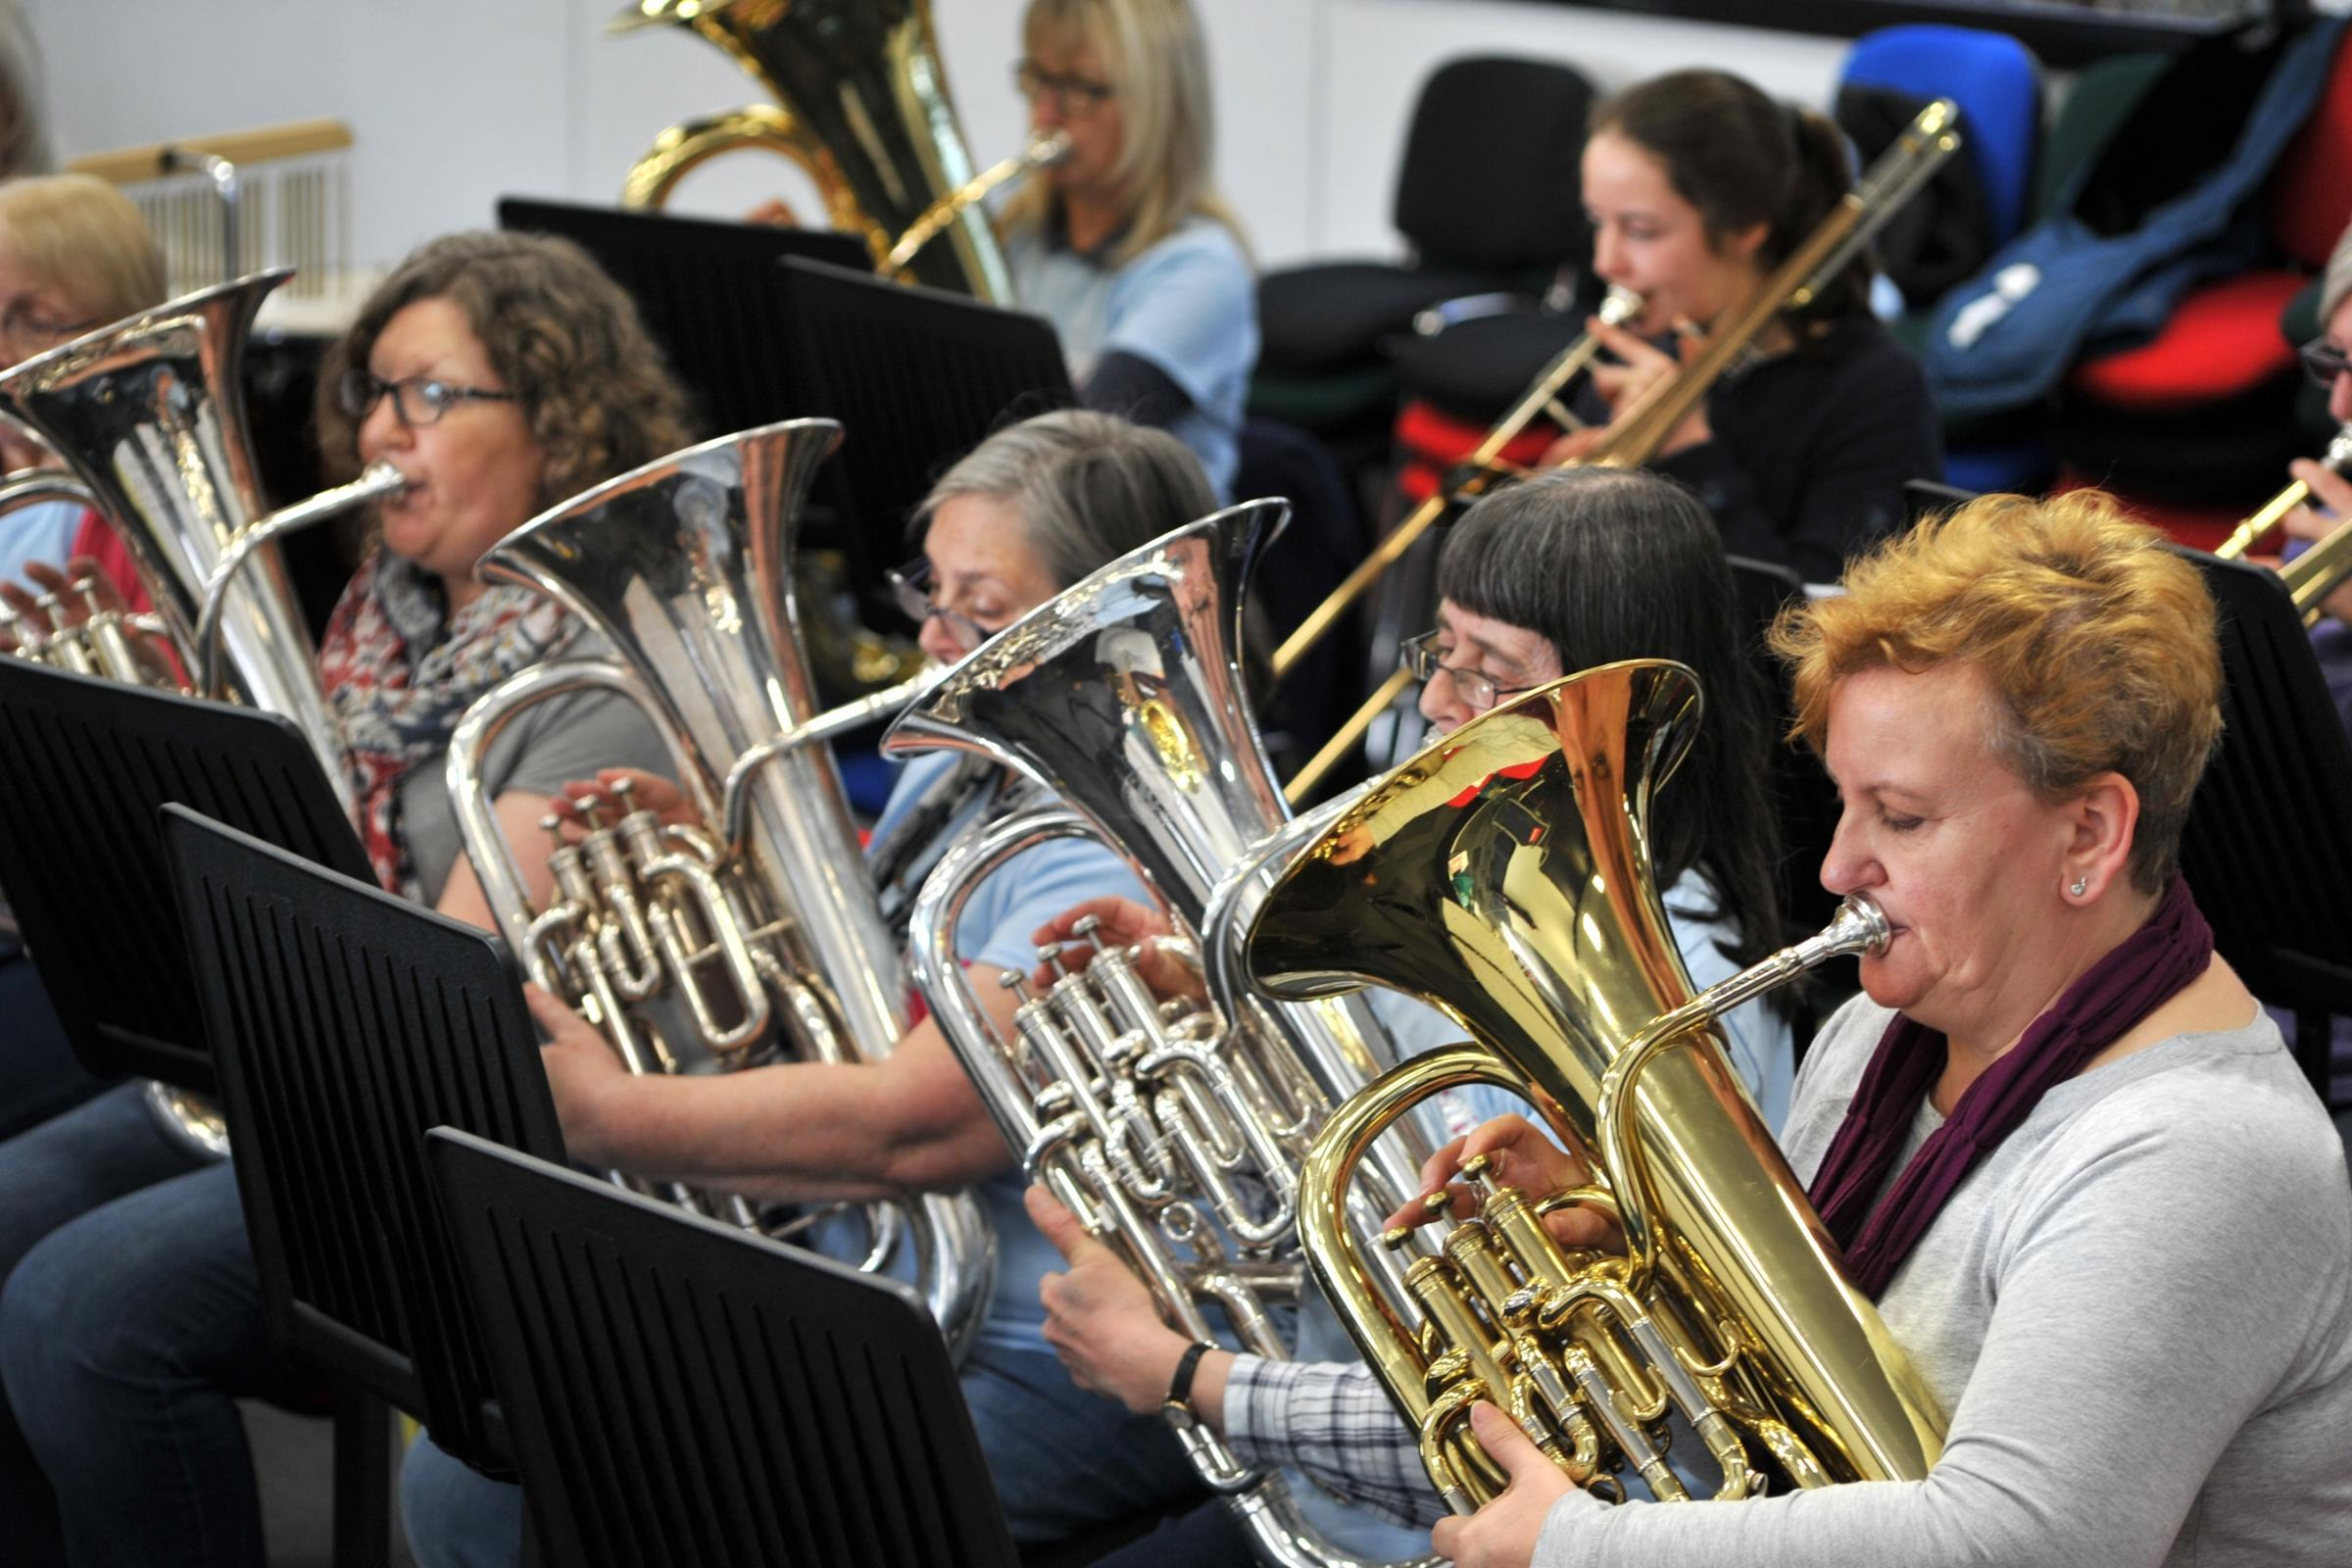 FEISTY FORTY: Members of Femmes Fortissimo rehearse for their concert in York on Saturday